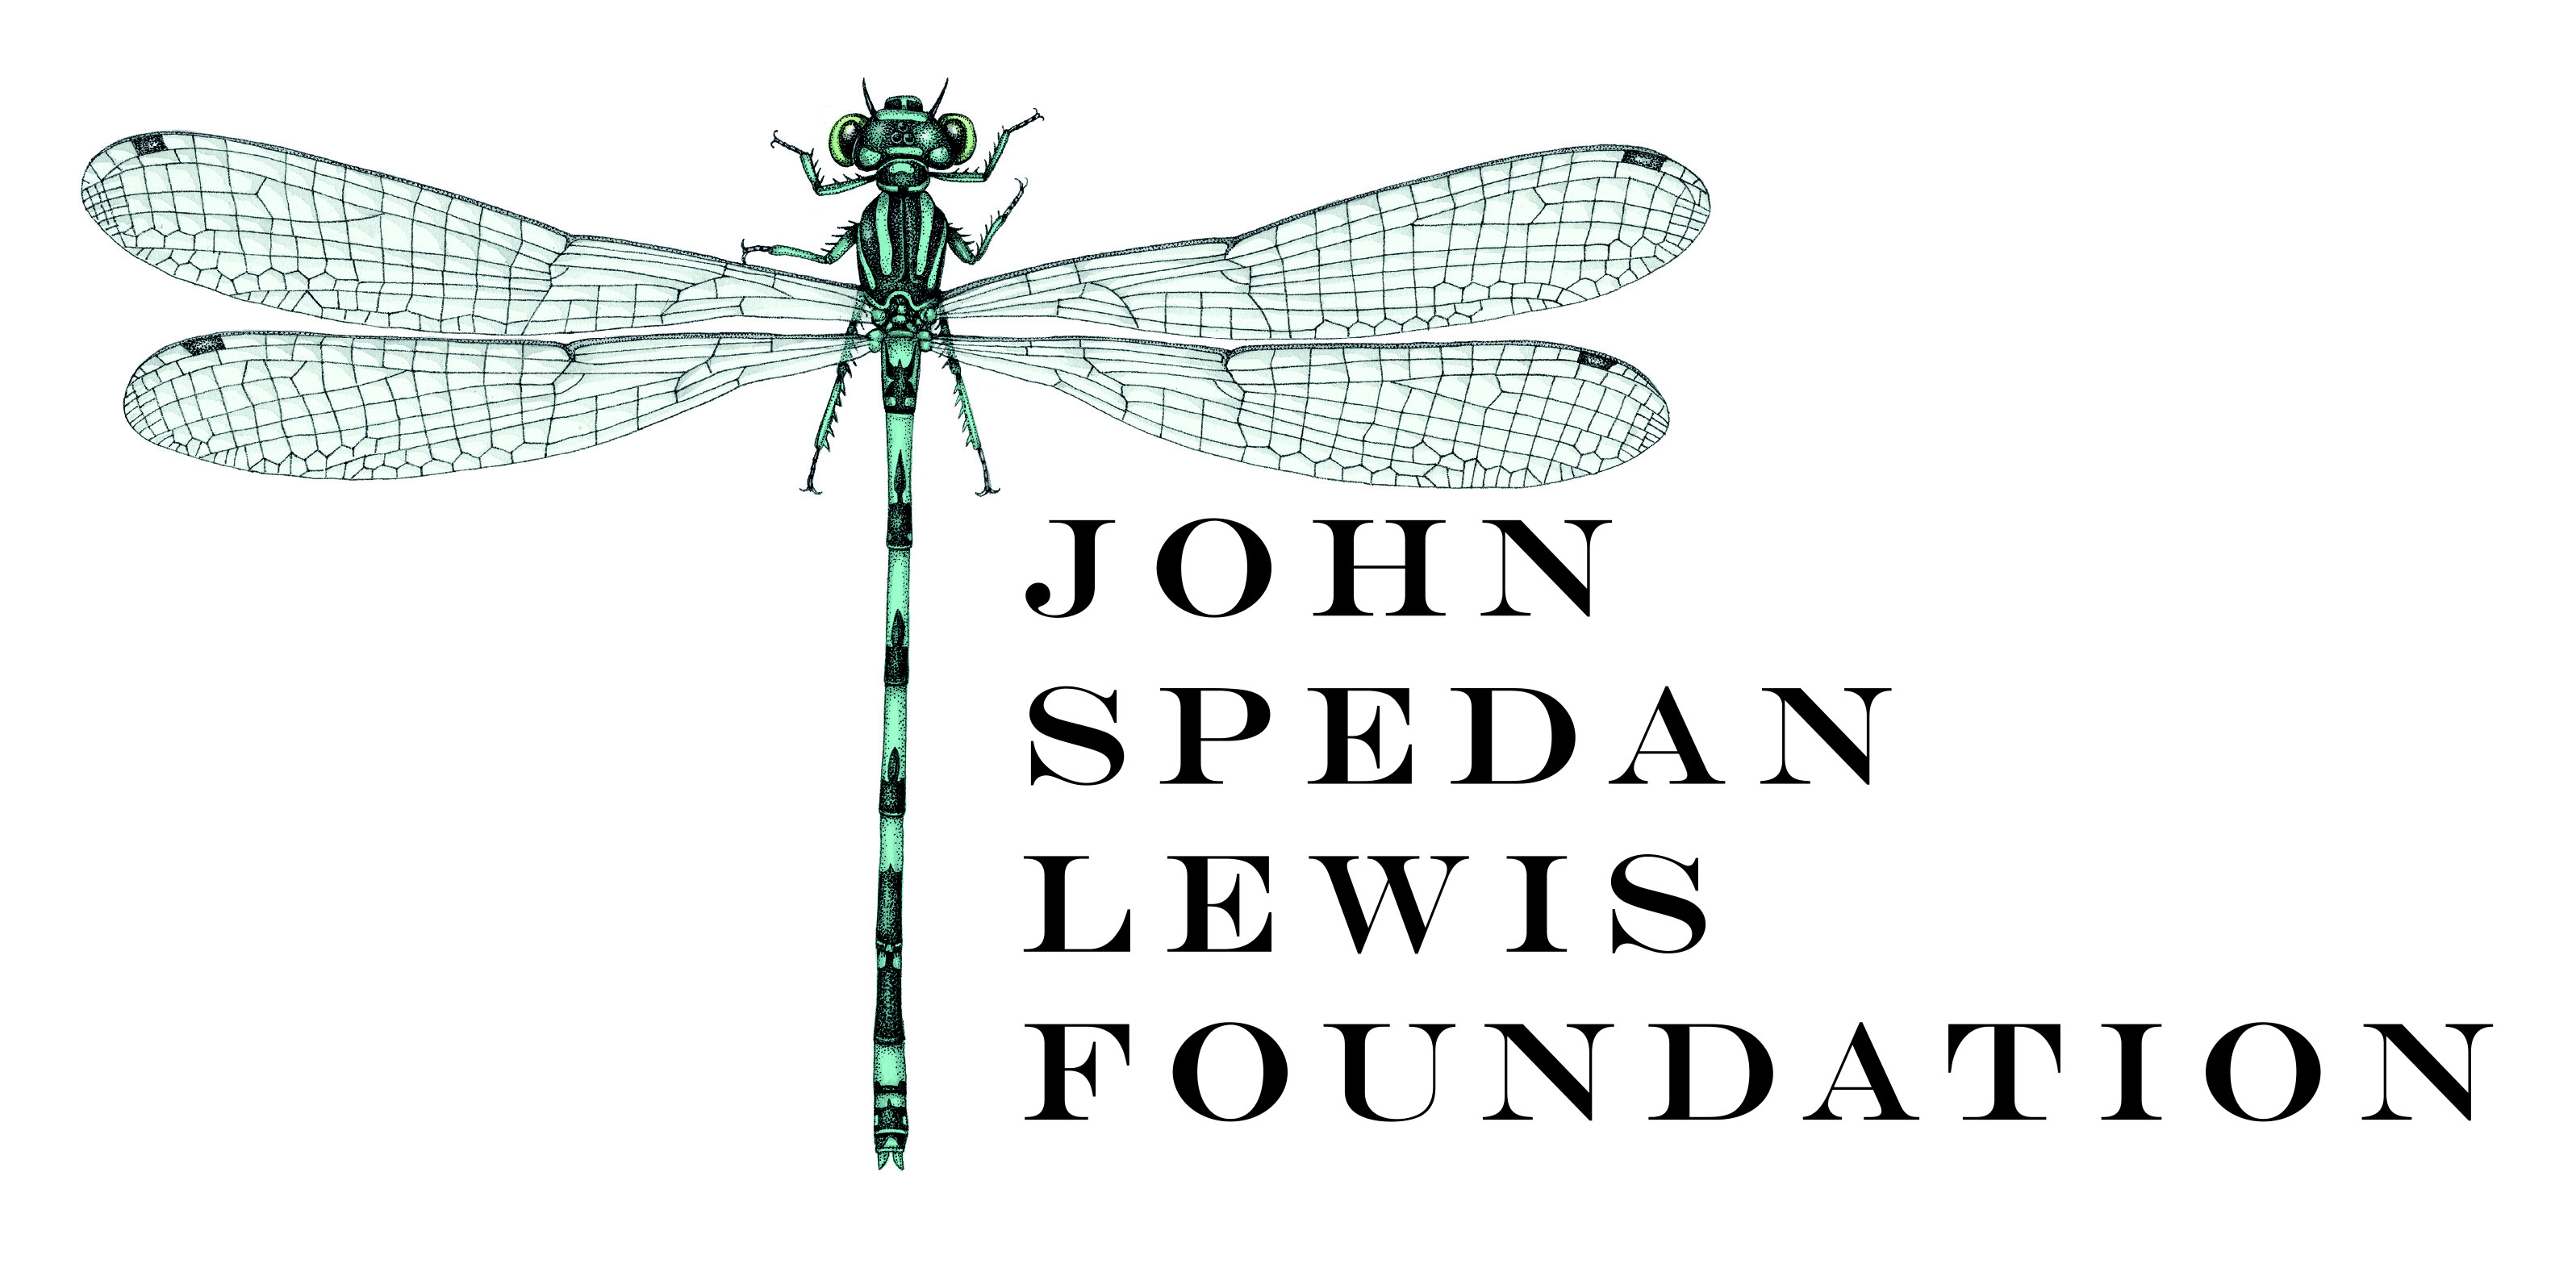 A natural history and conservation charity